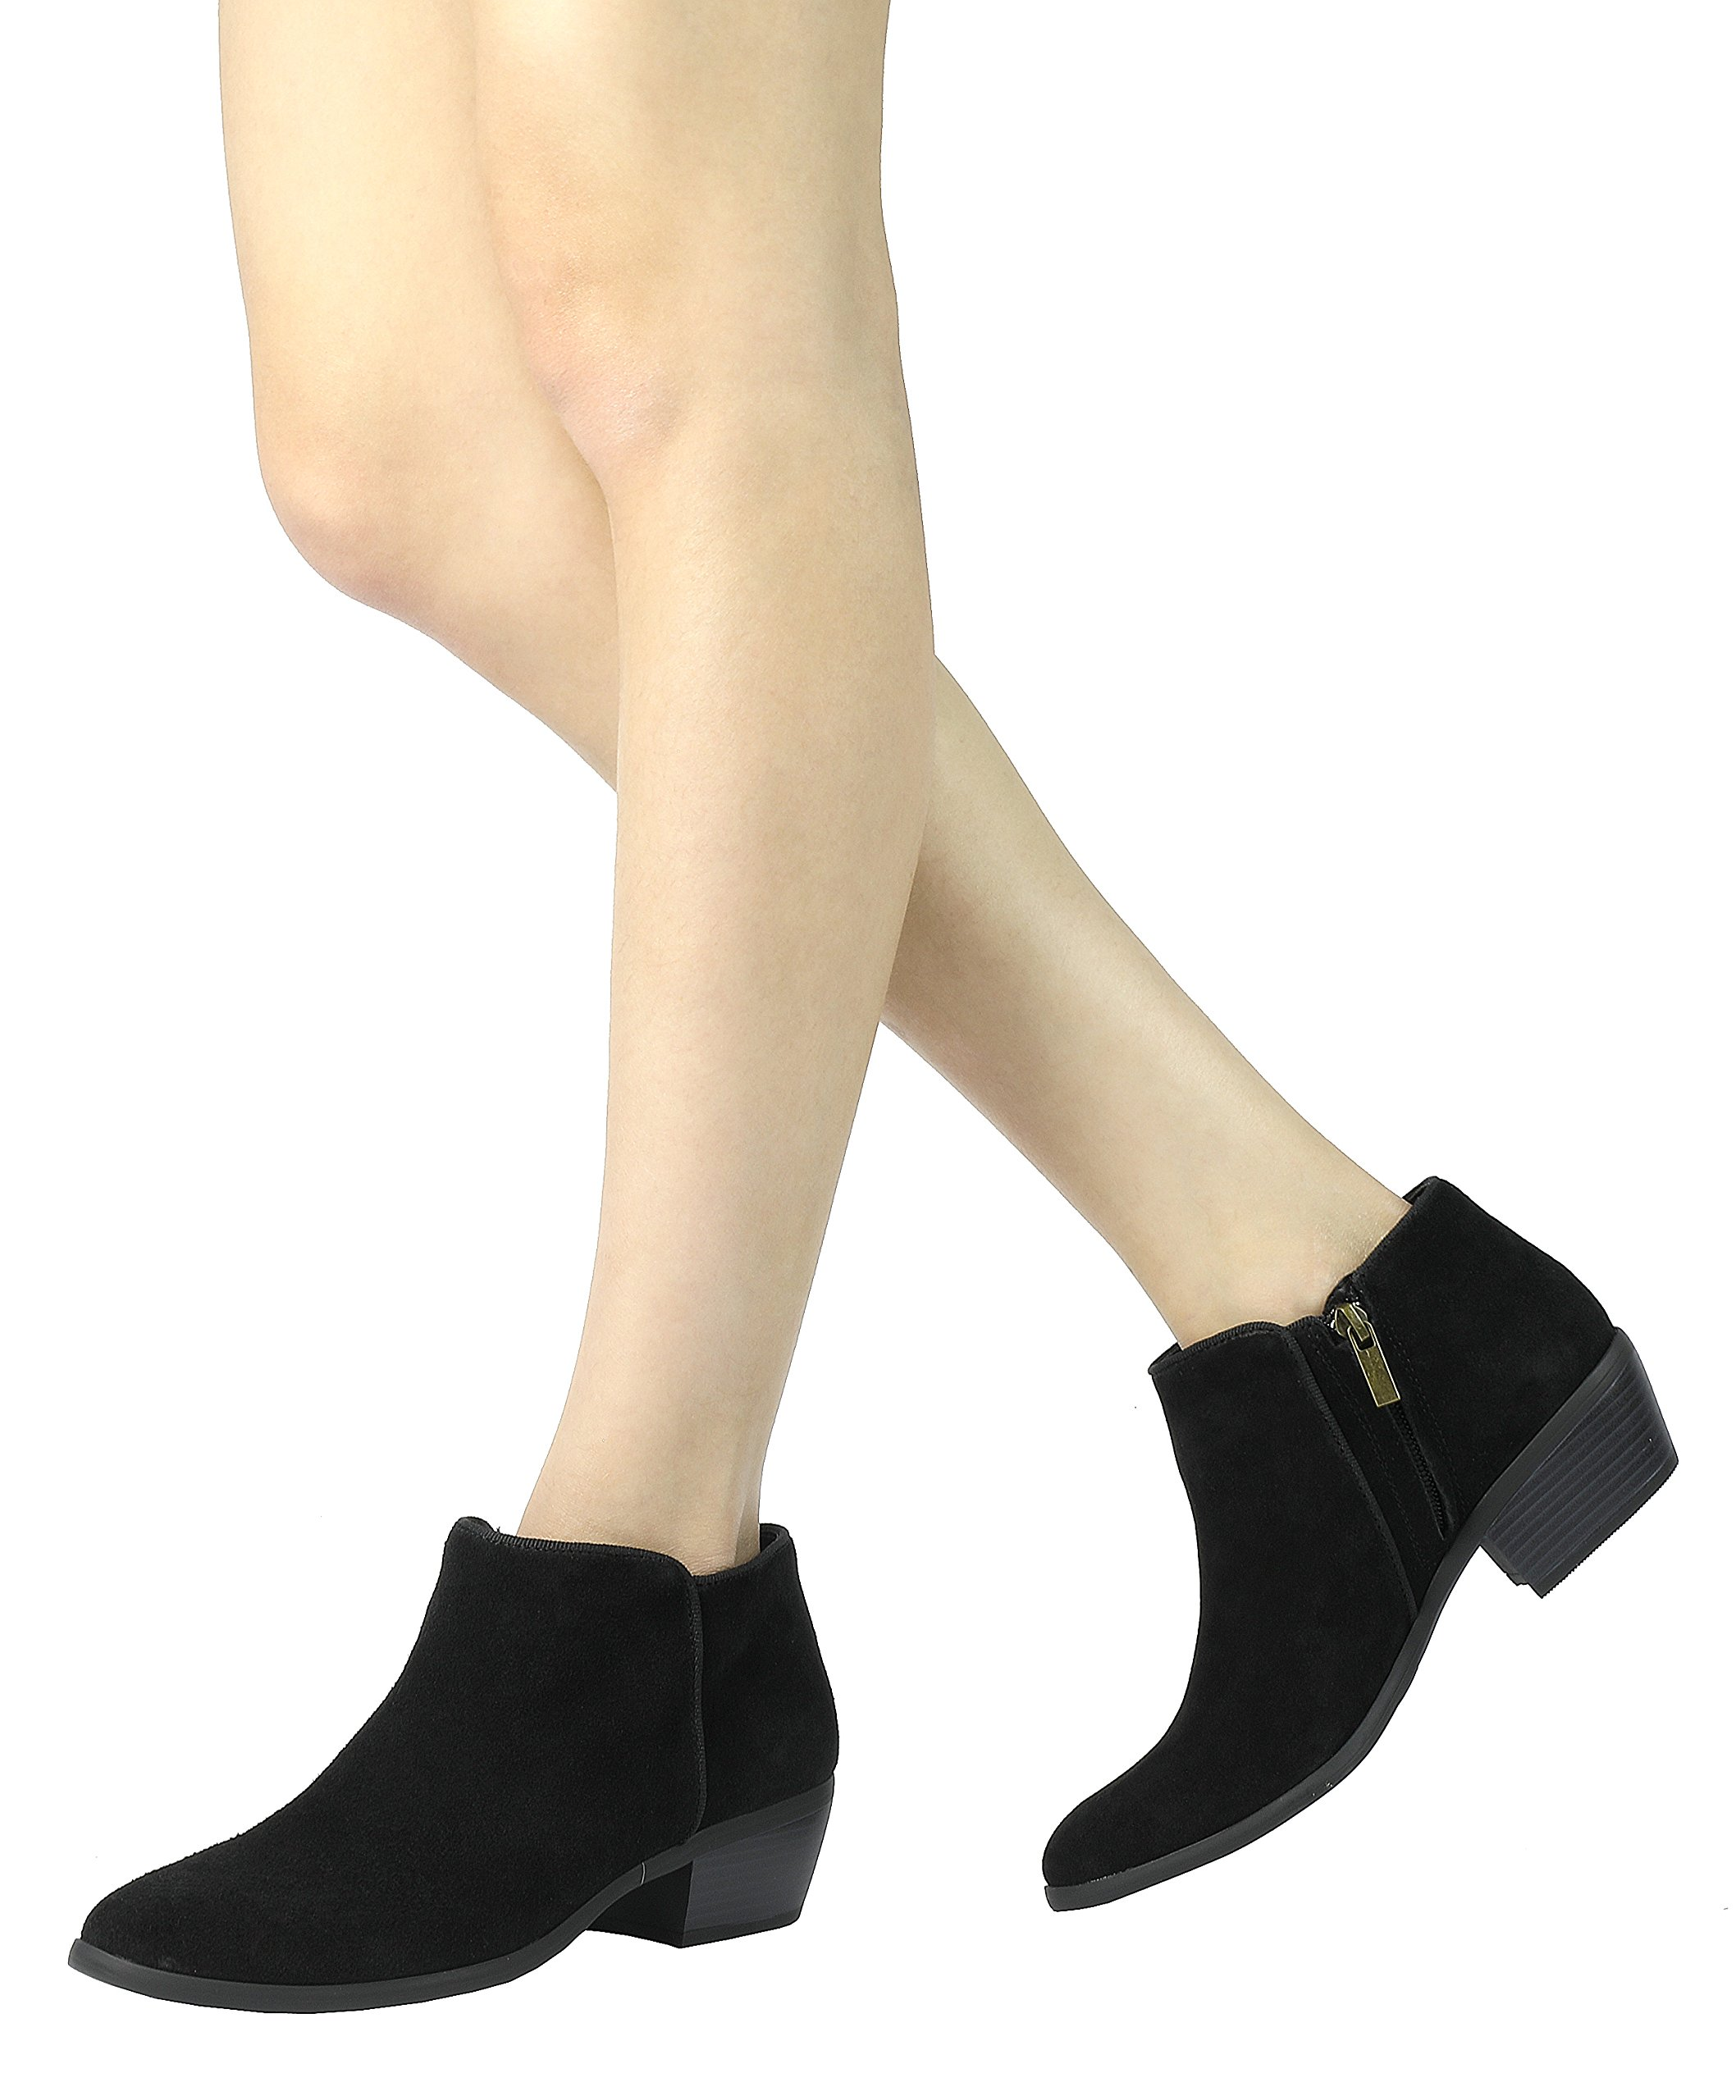 TOETOS Womens Low Stacked Heel Ankle Riding Booties